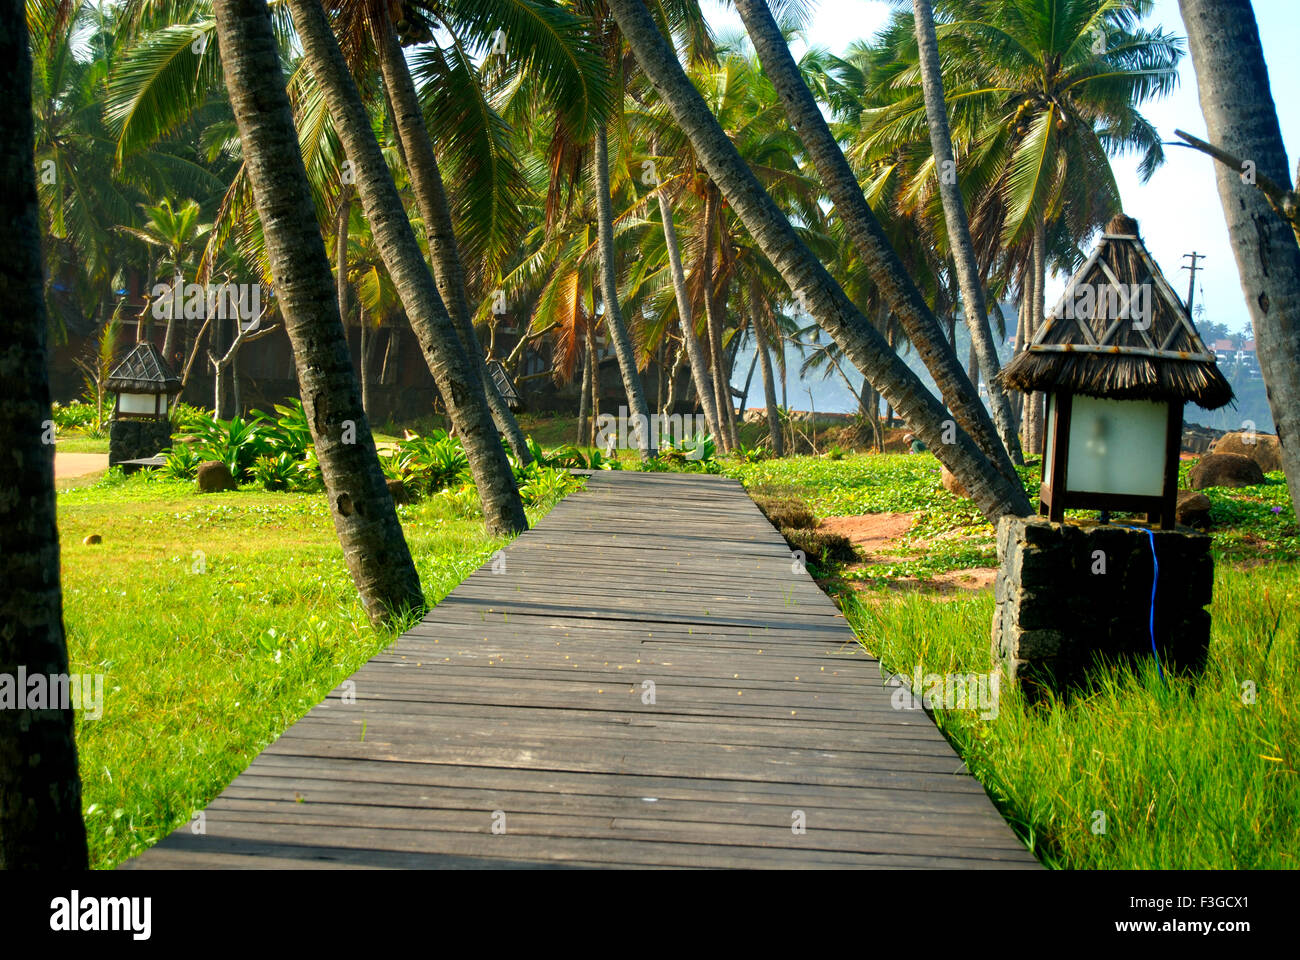 Road paths made by wood planks and marked by lamps on sides ; Trivandrum ; Kerala ; India - Stock Image